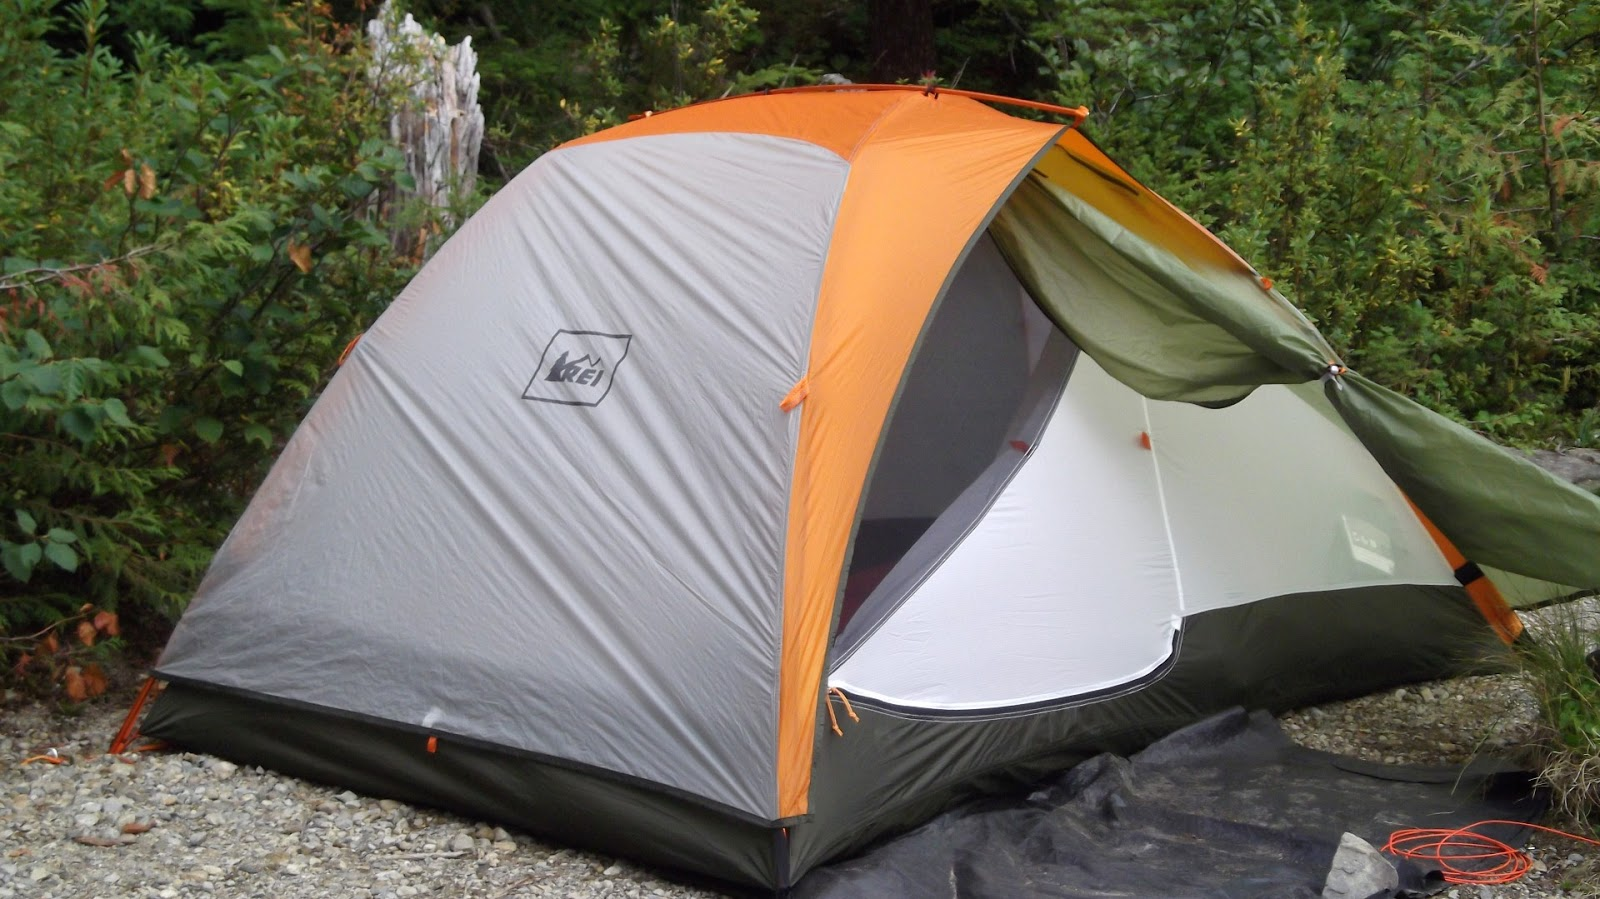 Looking forward to backpacking overnight all seasons this year with this very nice well designed tent from REI. You can see the first time setup on my ... & Wawhiker Backpacking: REI Cirque 2 ASL Tent Setup